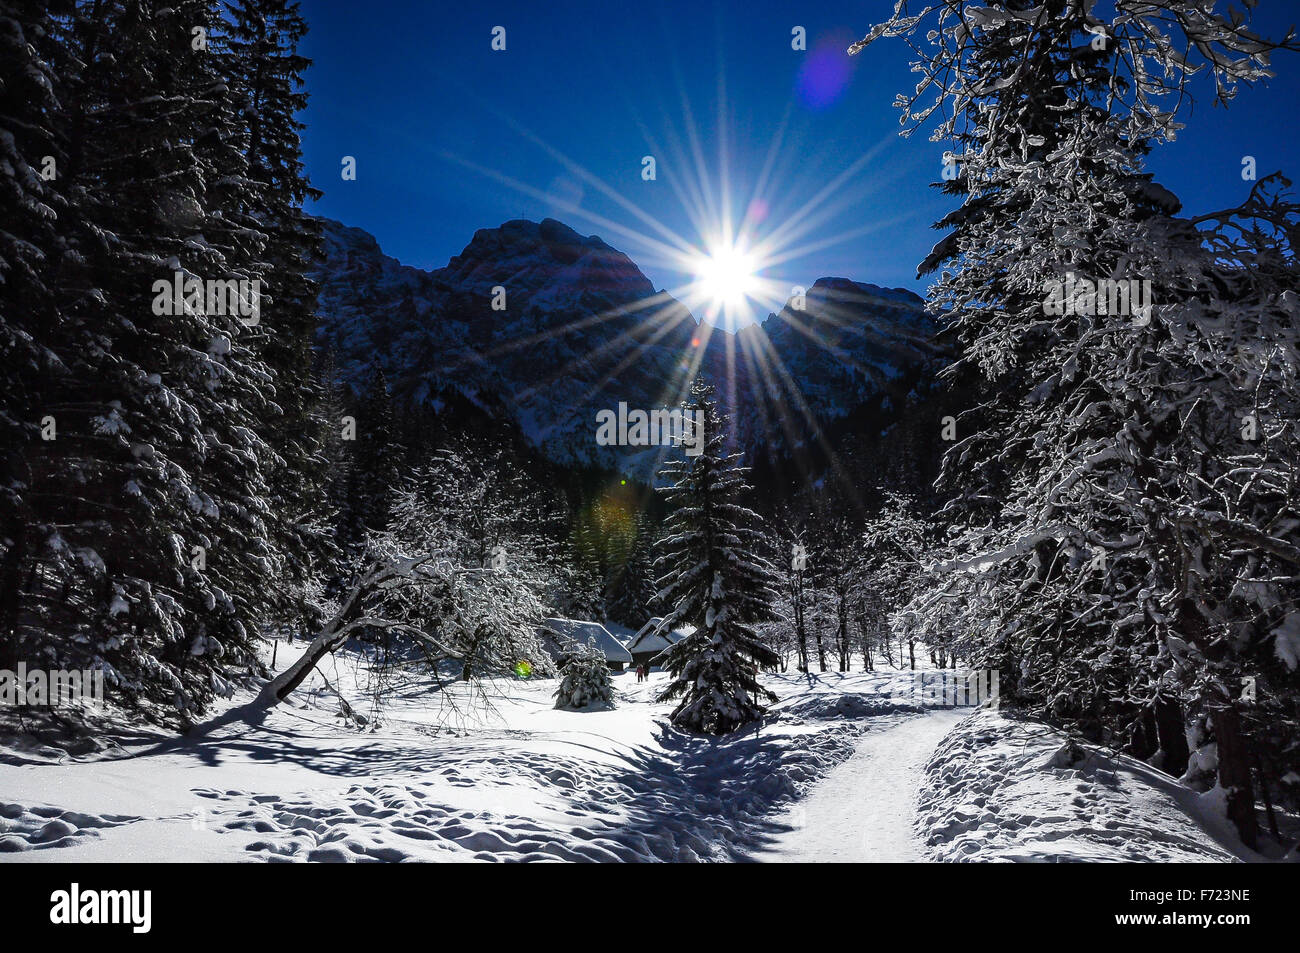 Sparkle in the sky, beautiful sunny day in Polish Tatra mountains - Stock Image